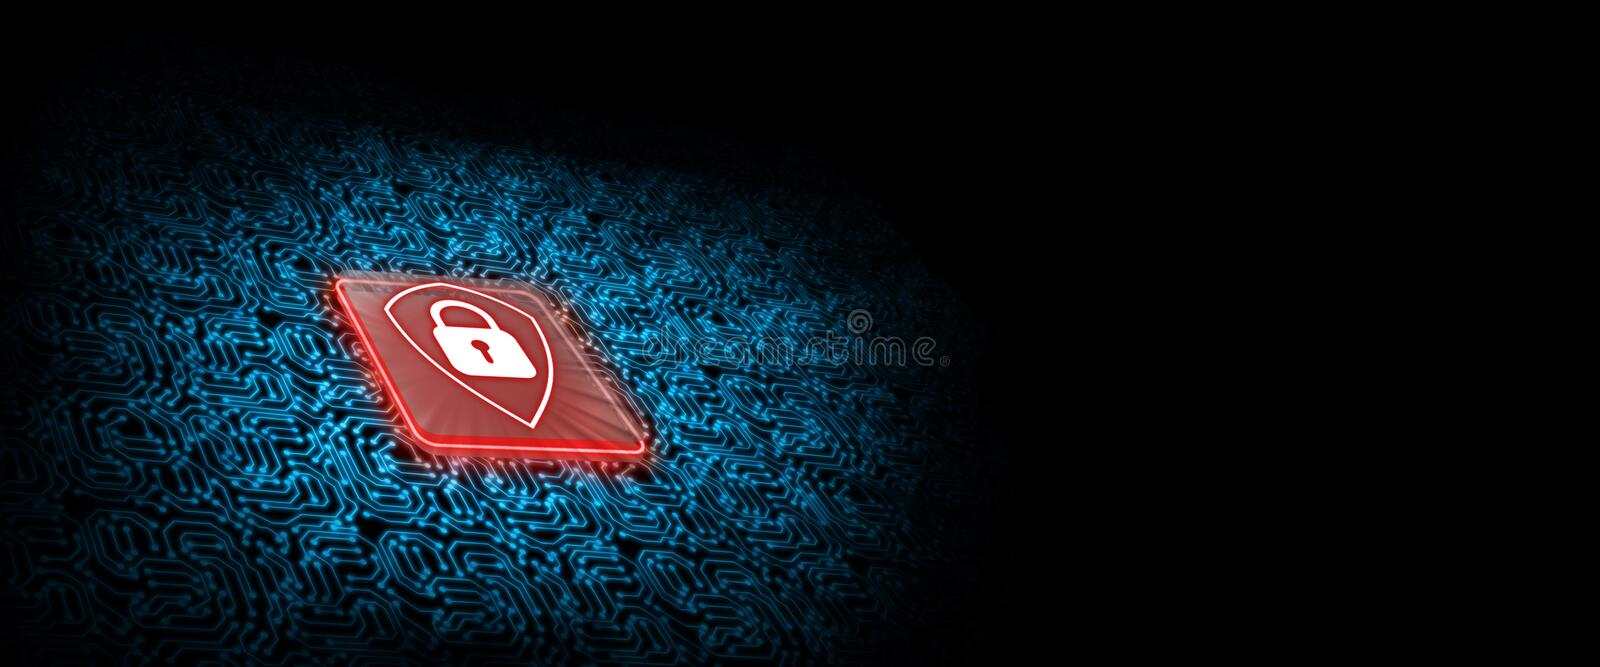 Red shield logo on microchip with glow circuit board background. Concept of business security. vector illustration